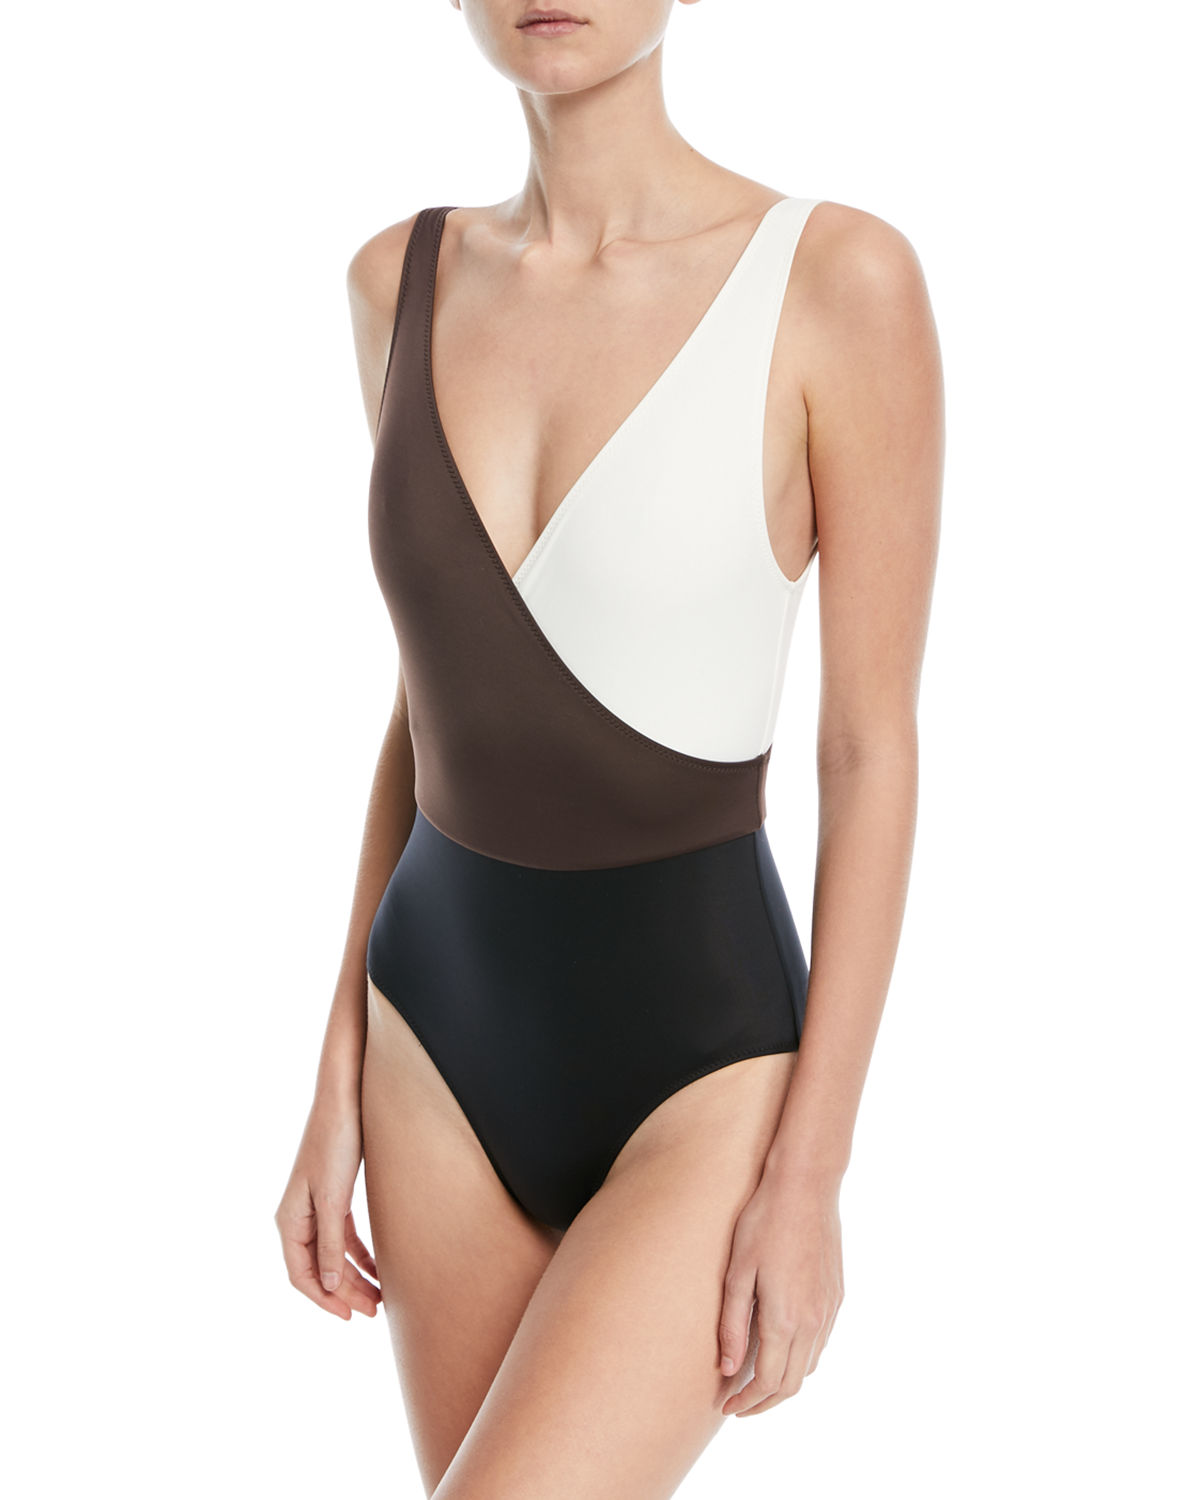 Solid & Striped Beachwear THE BALLERINA COLORBLOCKED ONE-PIECE SWIMSUIT